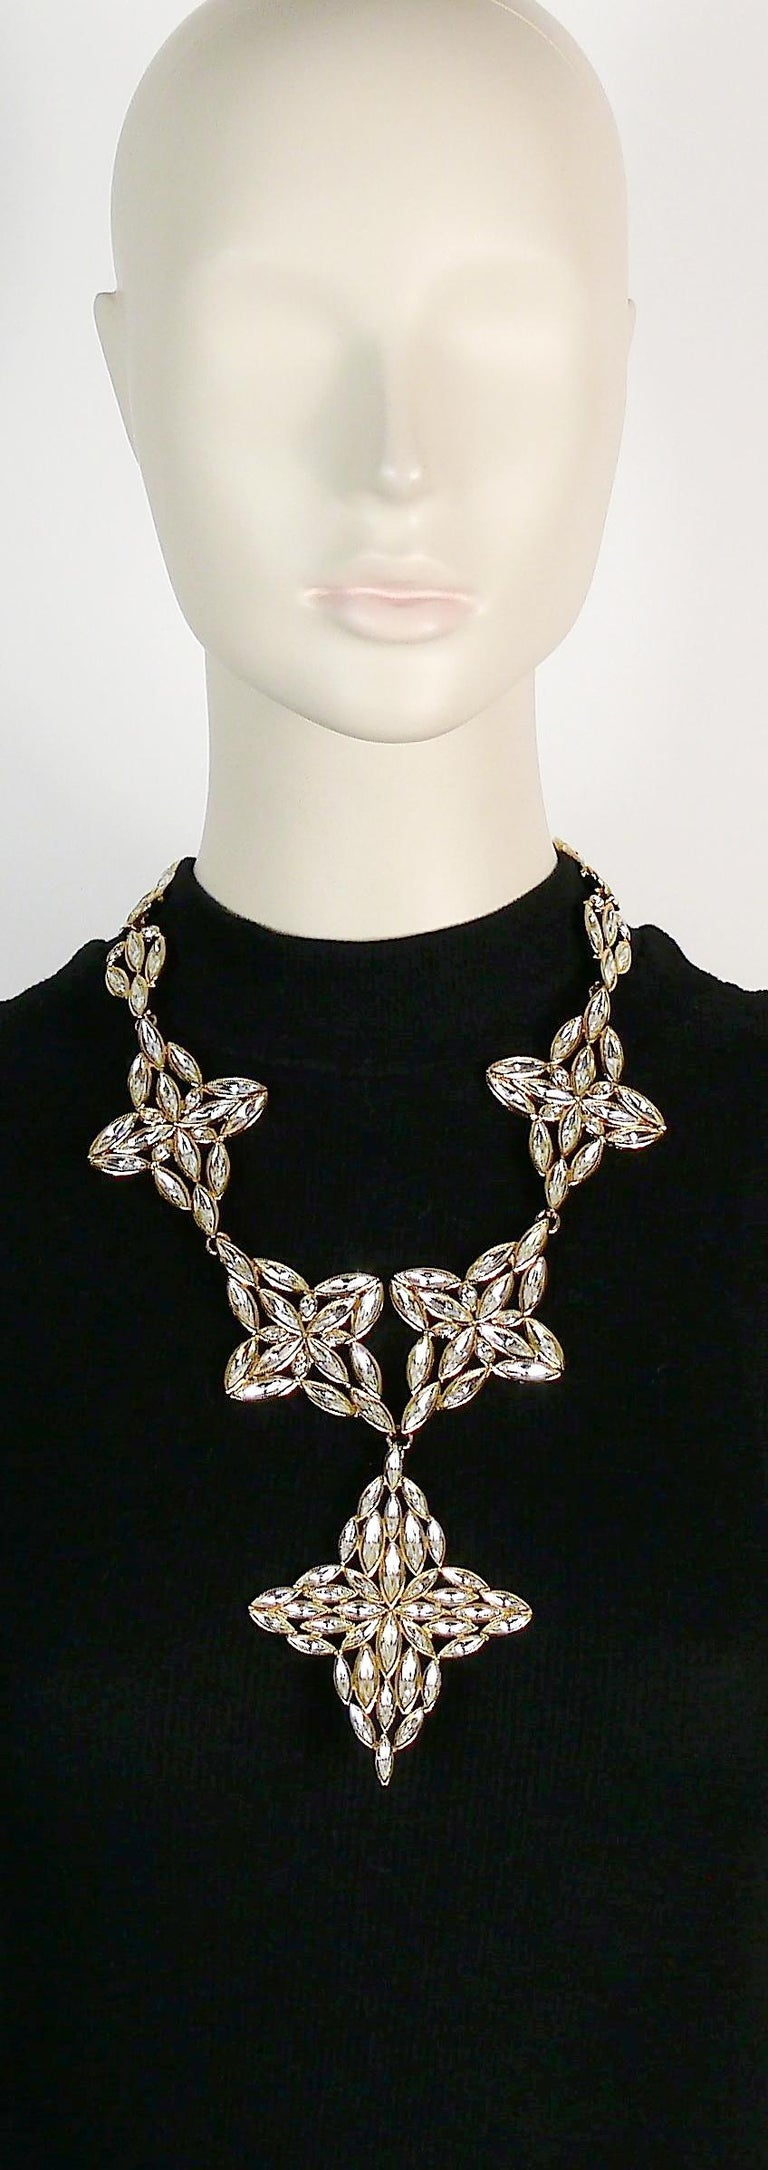 YVES SAINT LAURENT vintage gold toned statement necklace featuring stylized flowers embellished with clear crystals.  Lobster clasp closure. Adjustable length.  Embossed YSL Made in France.  Indicative measurements : adjustable length from approx.